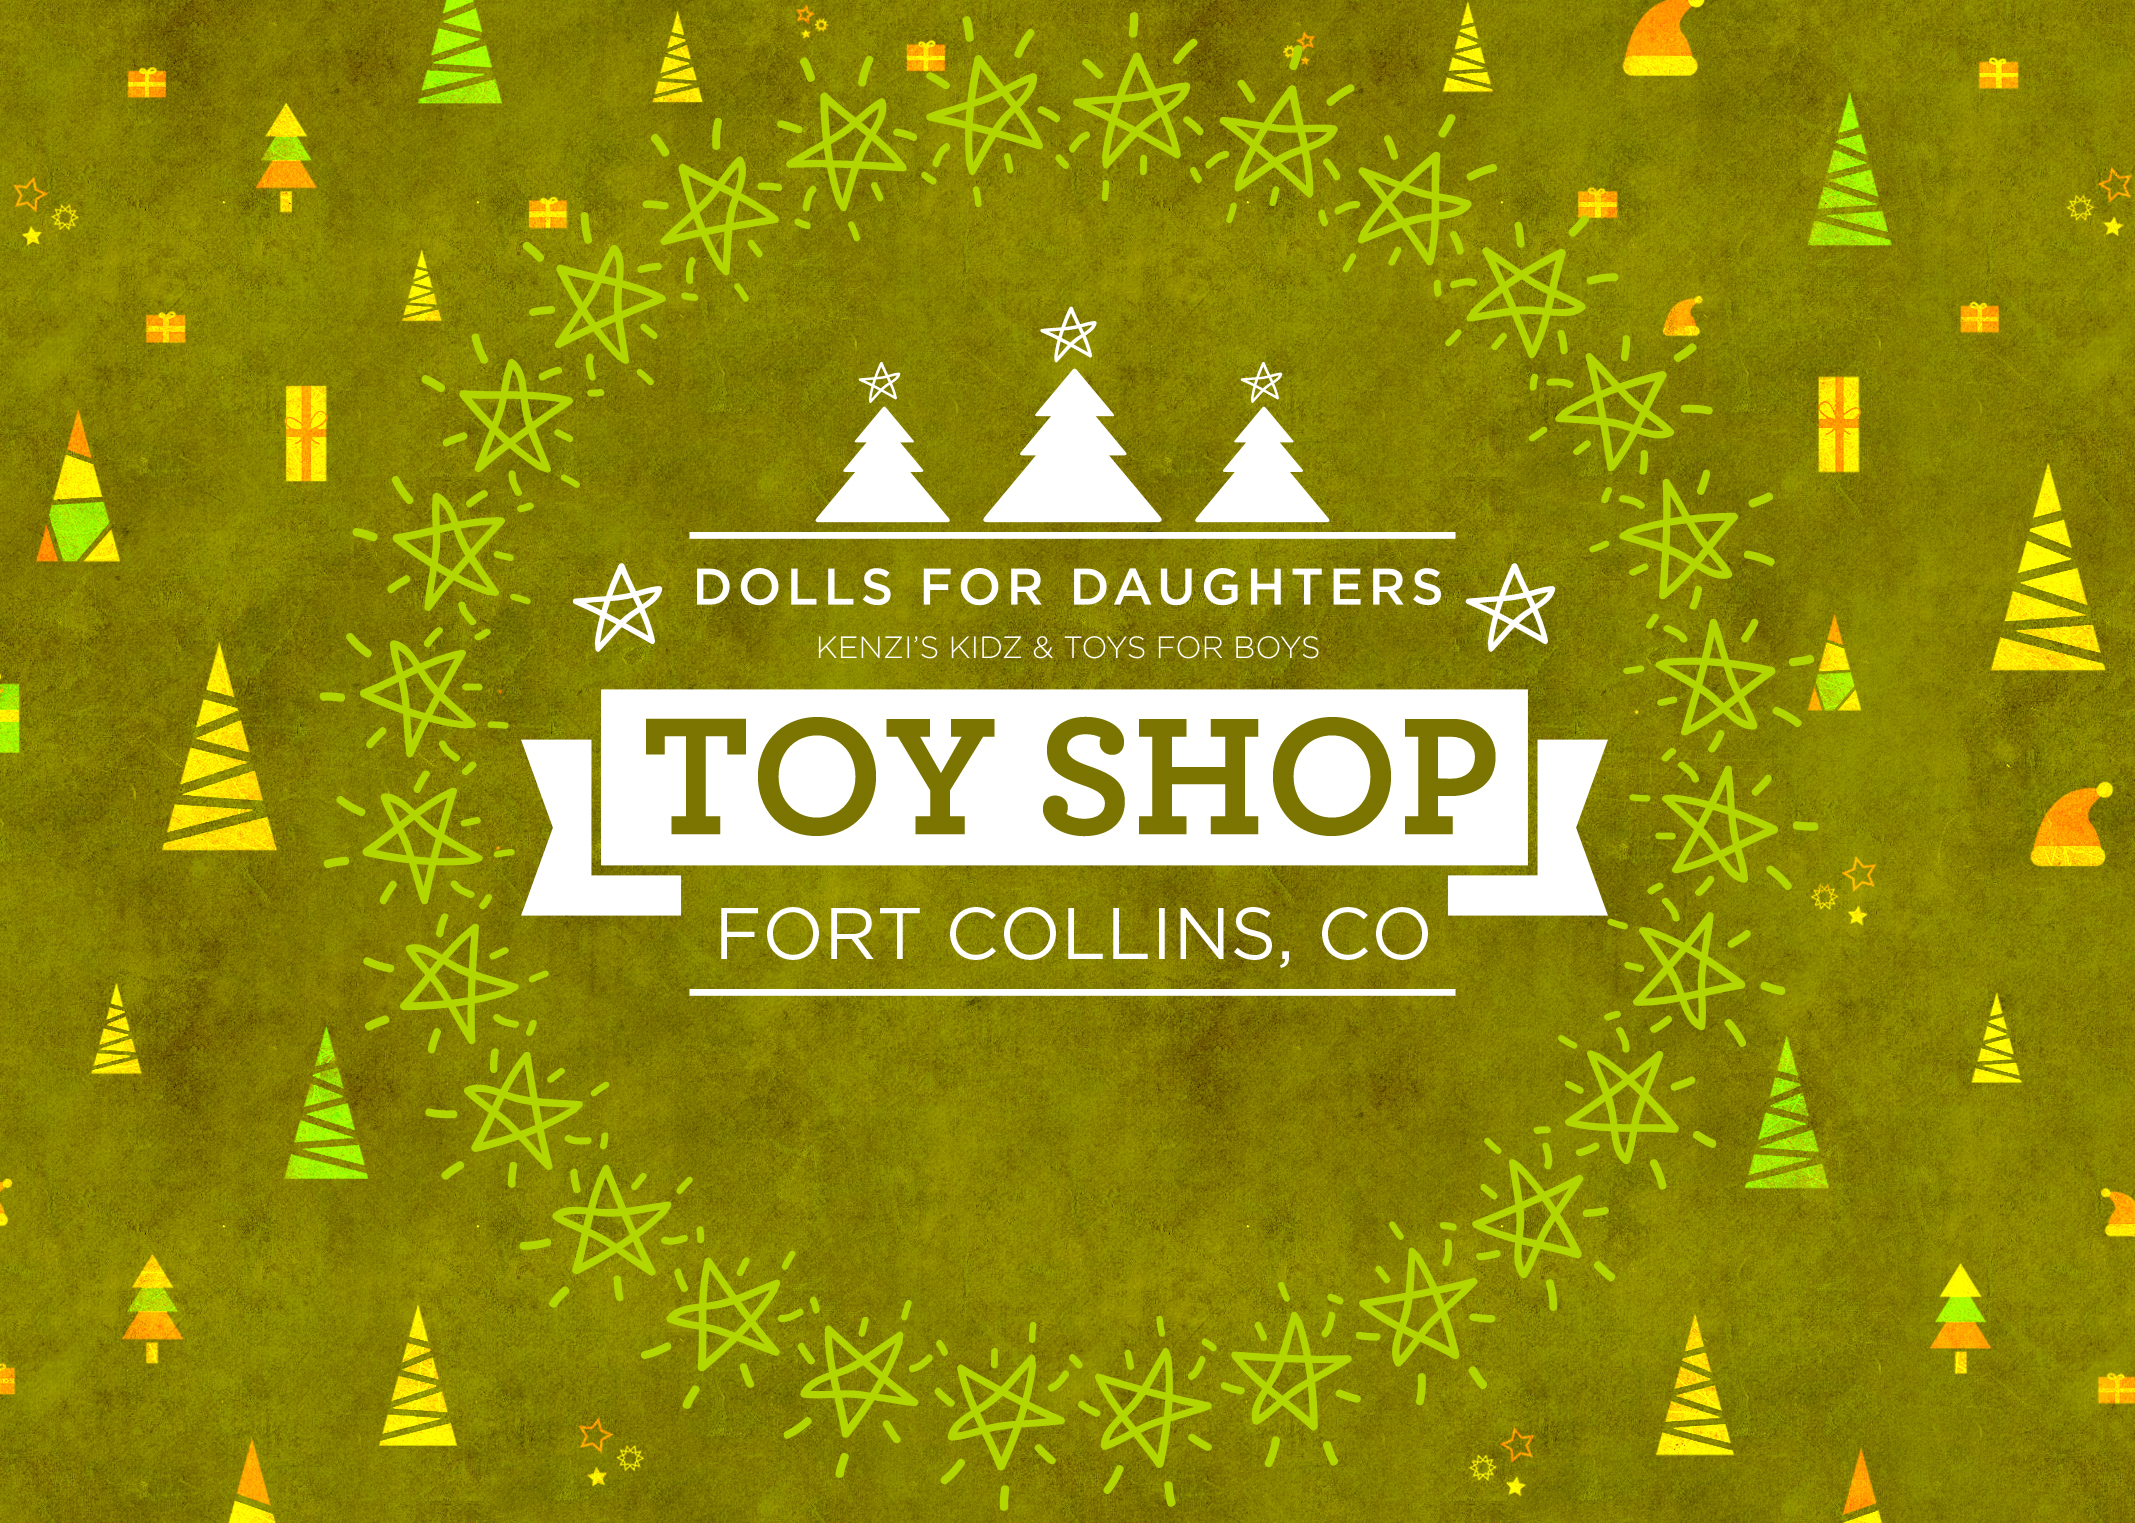 Toy Shop Fort Collins | Dolls for Daughters